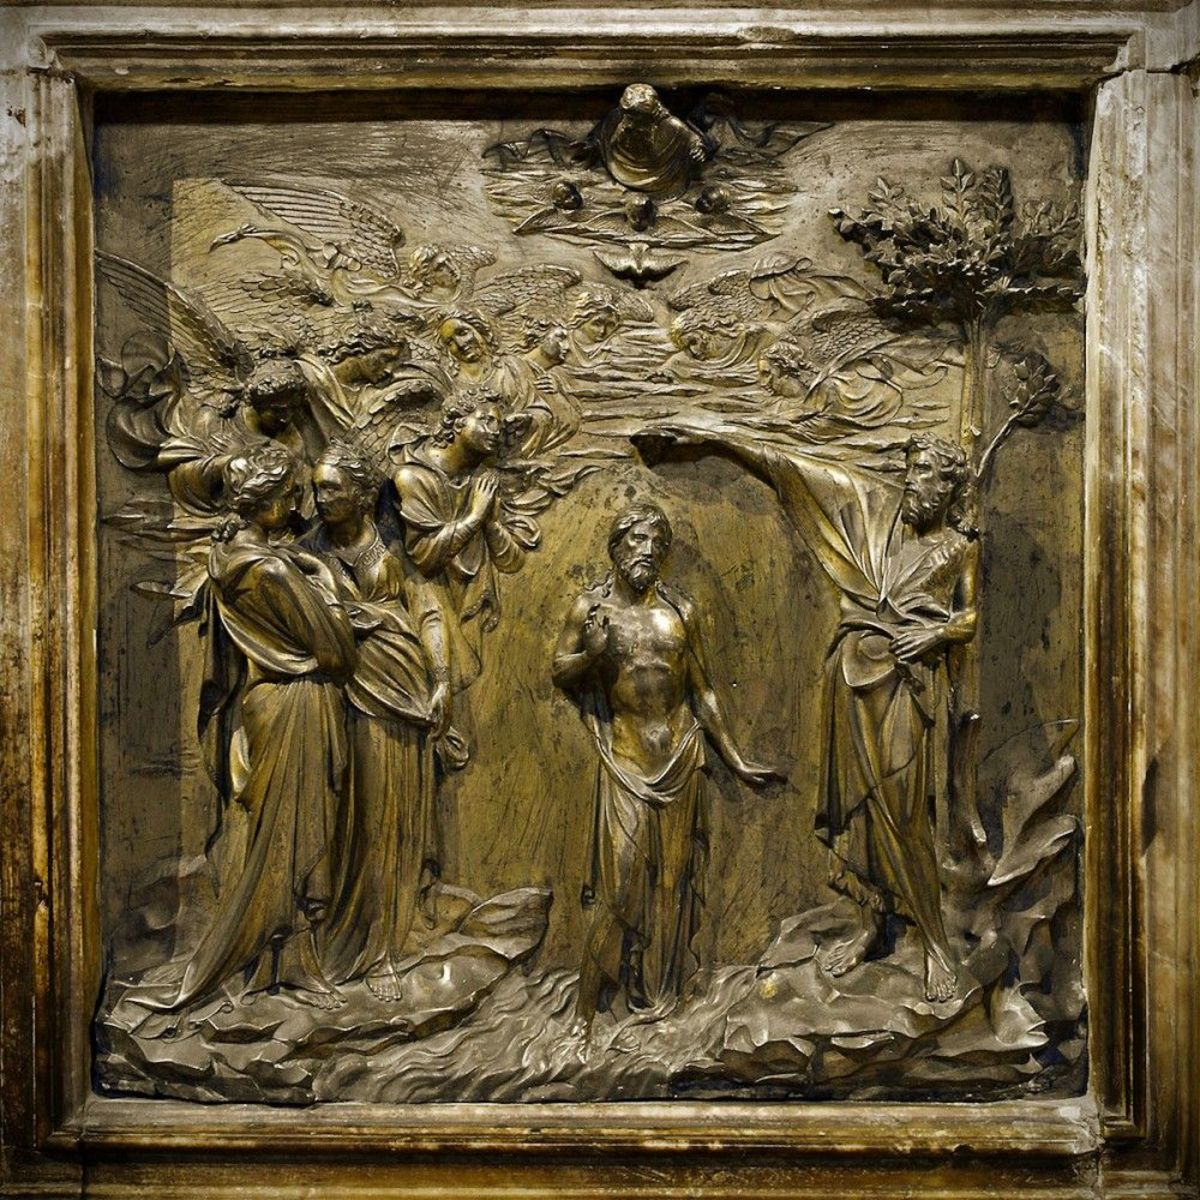 Figure 2: Lorenzo Ghiberti, Baptism of Christ. 1378-1455, Gilt bronze, 45 x 52 cm. Reproduced from: fifth panel of the North Doors of the Baptistery of San Giovanni. https://www.wga.hu/html_m/g/ghiberti/various/baptism1.html.